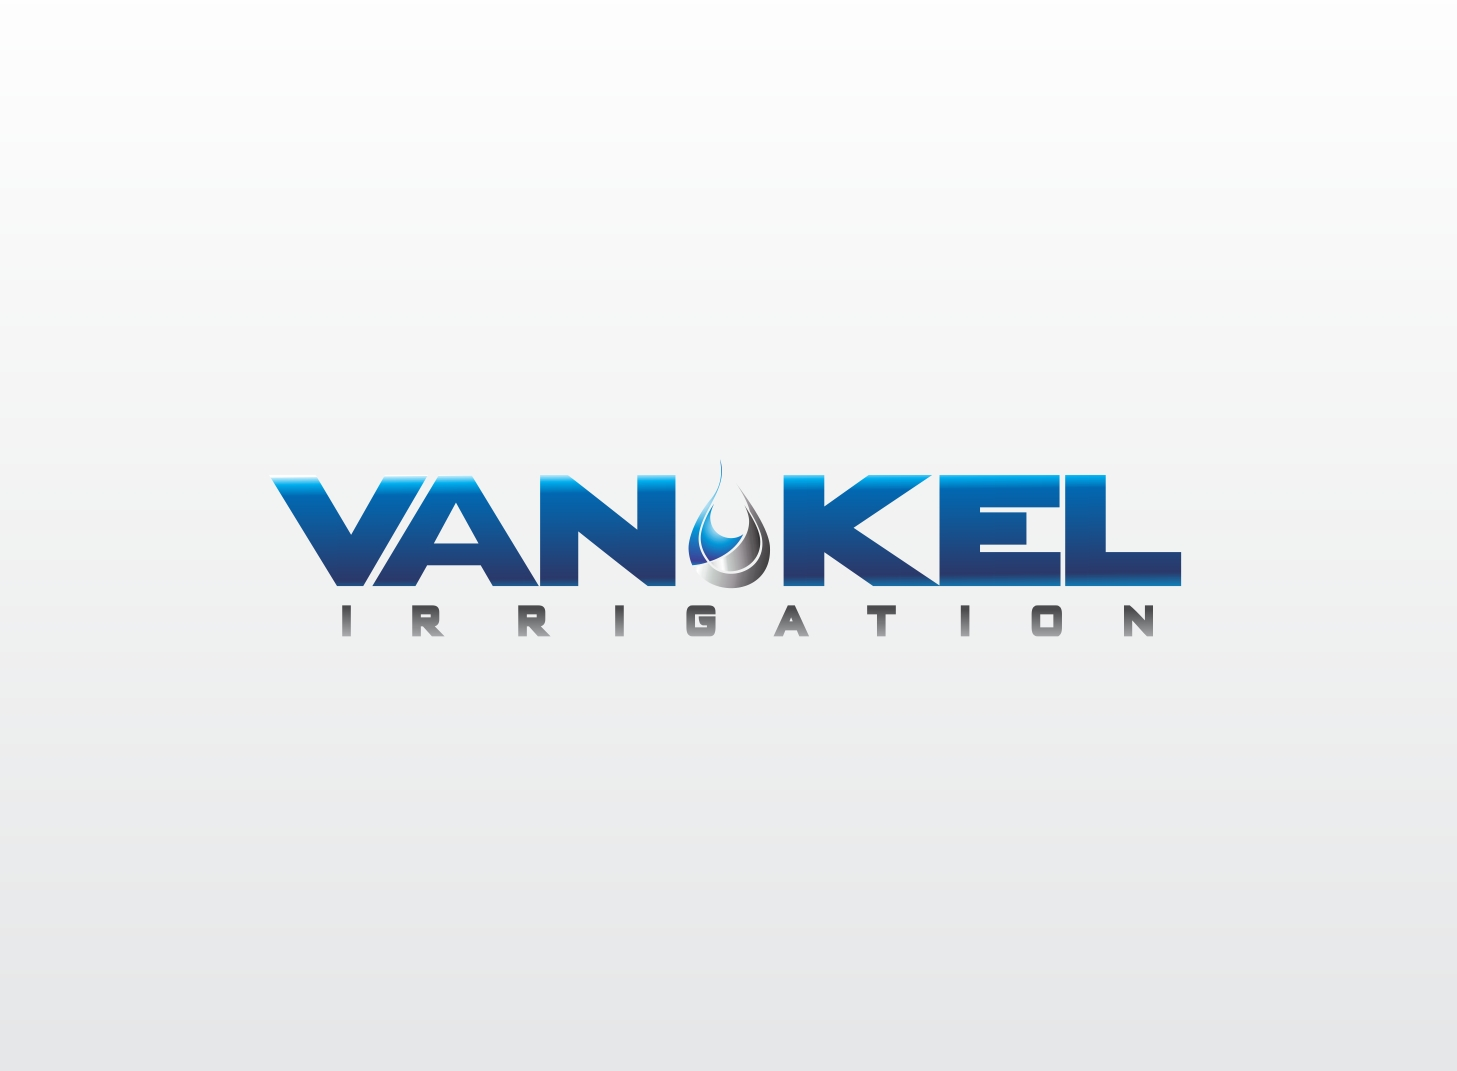 Logo Design by Zdravko Krulj - Entry No. 145 in the Logo Design Contest Van-Kel Irrigation Logo Design.